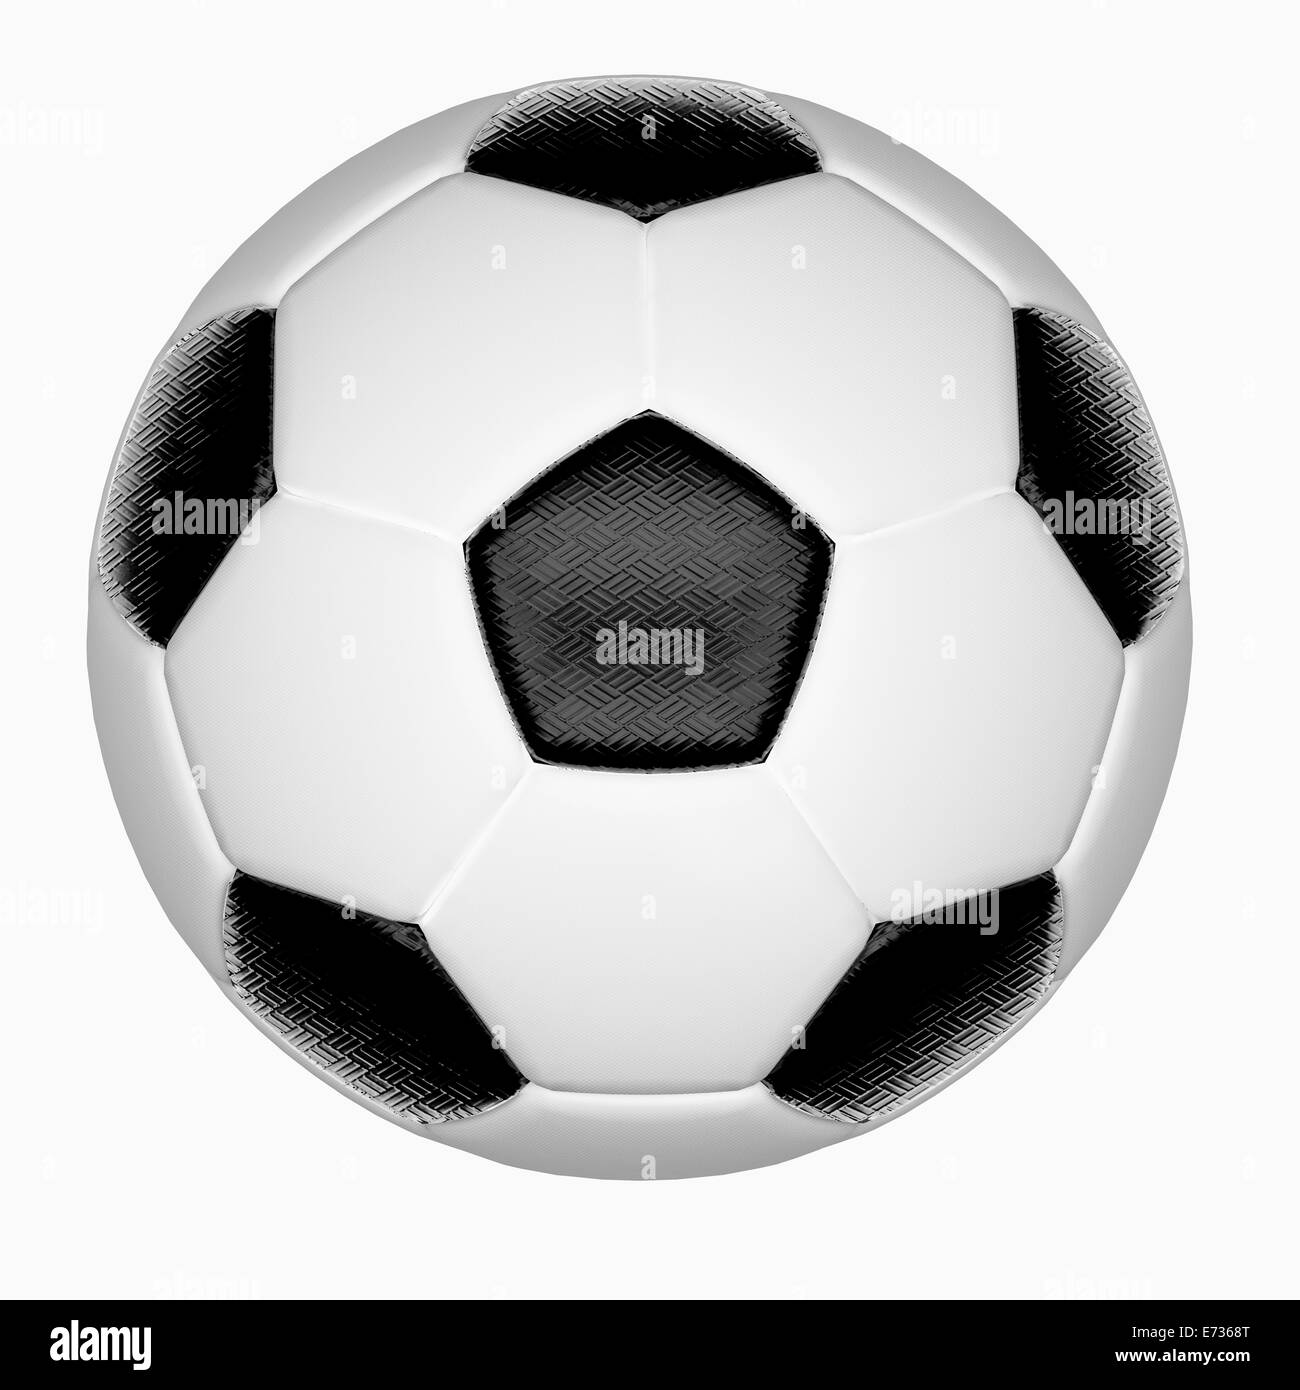 Two tone black and white soccer ball isolated on white background - Stock Image